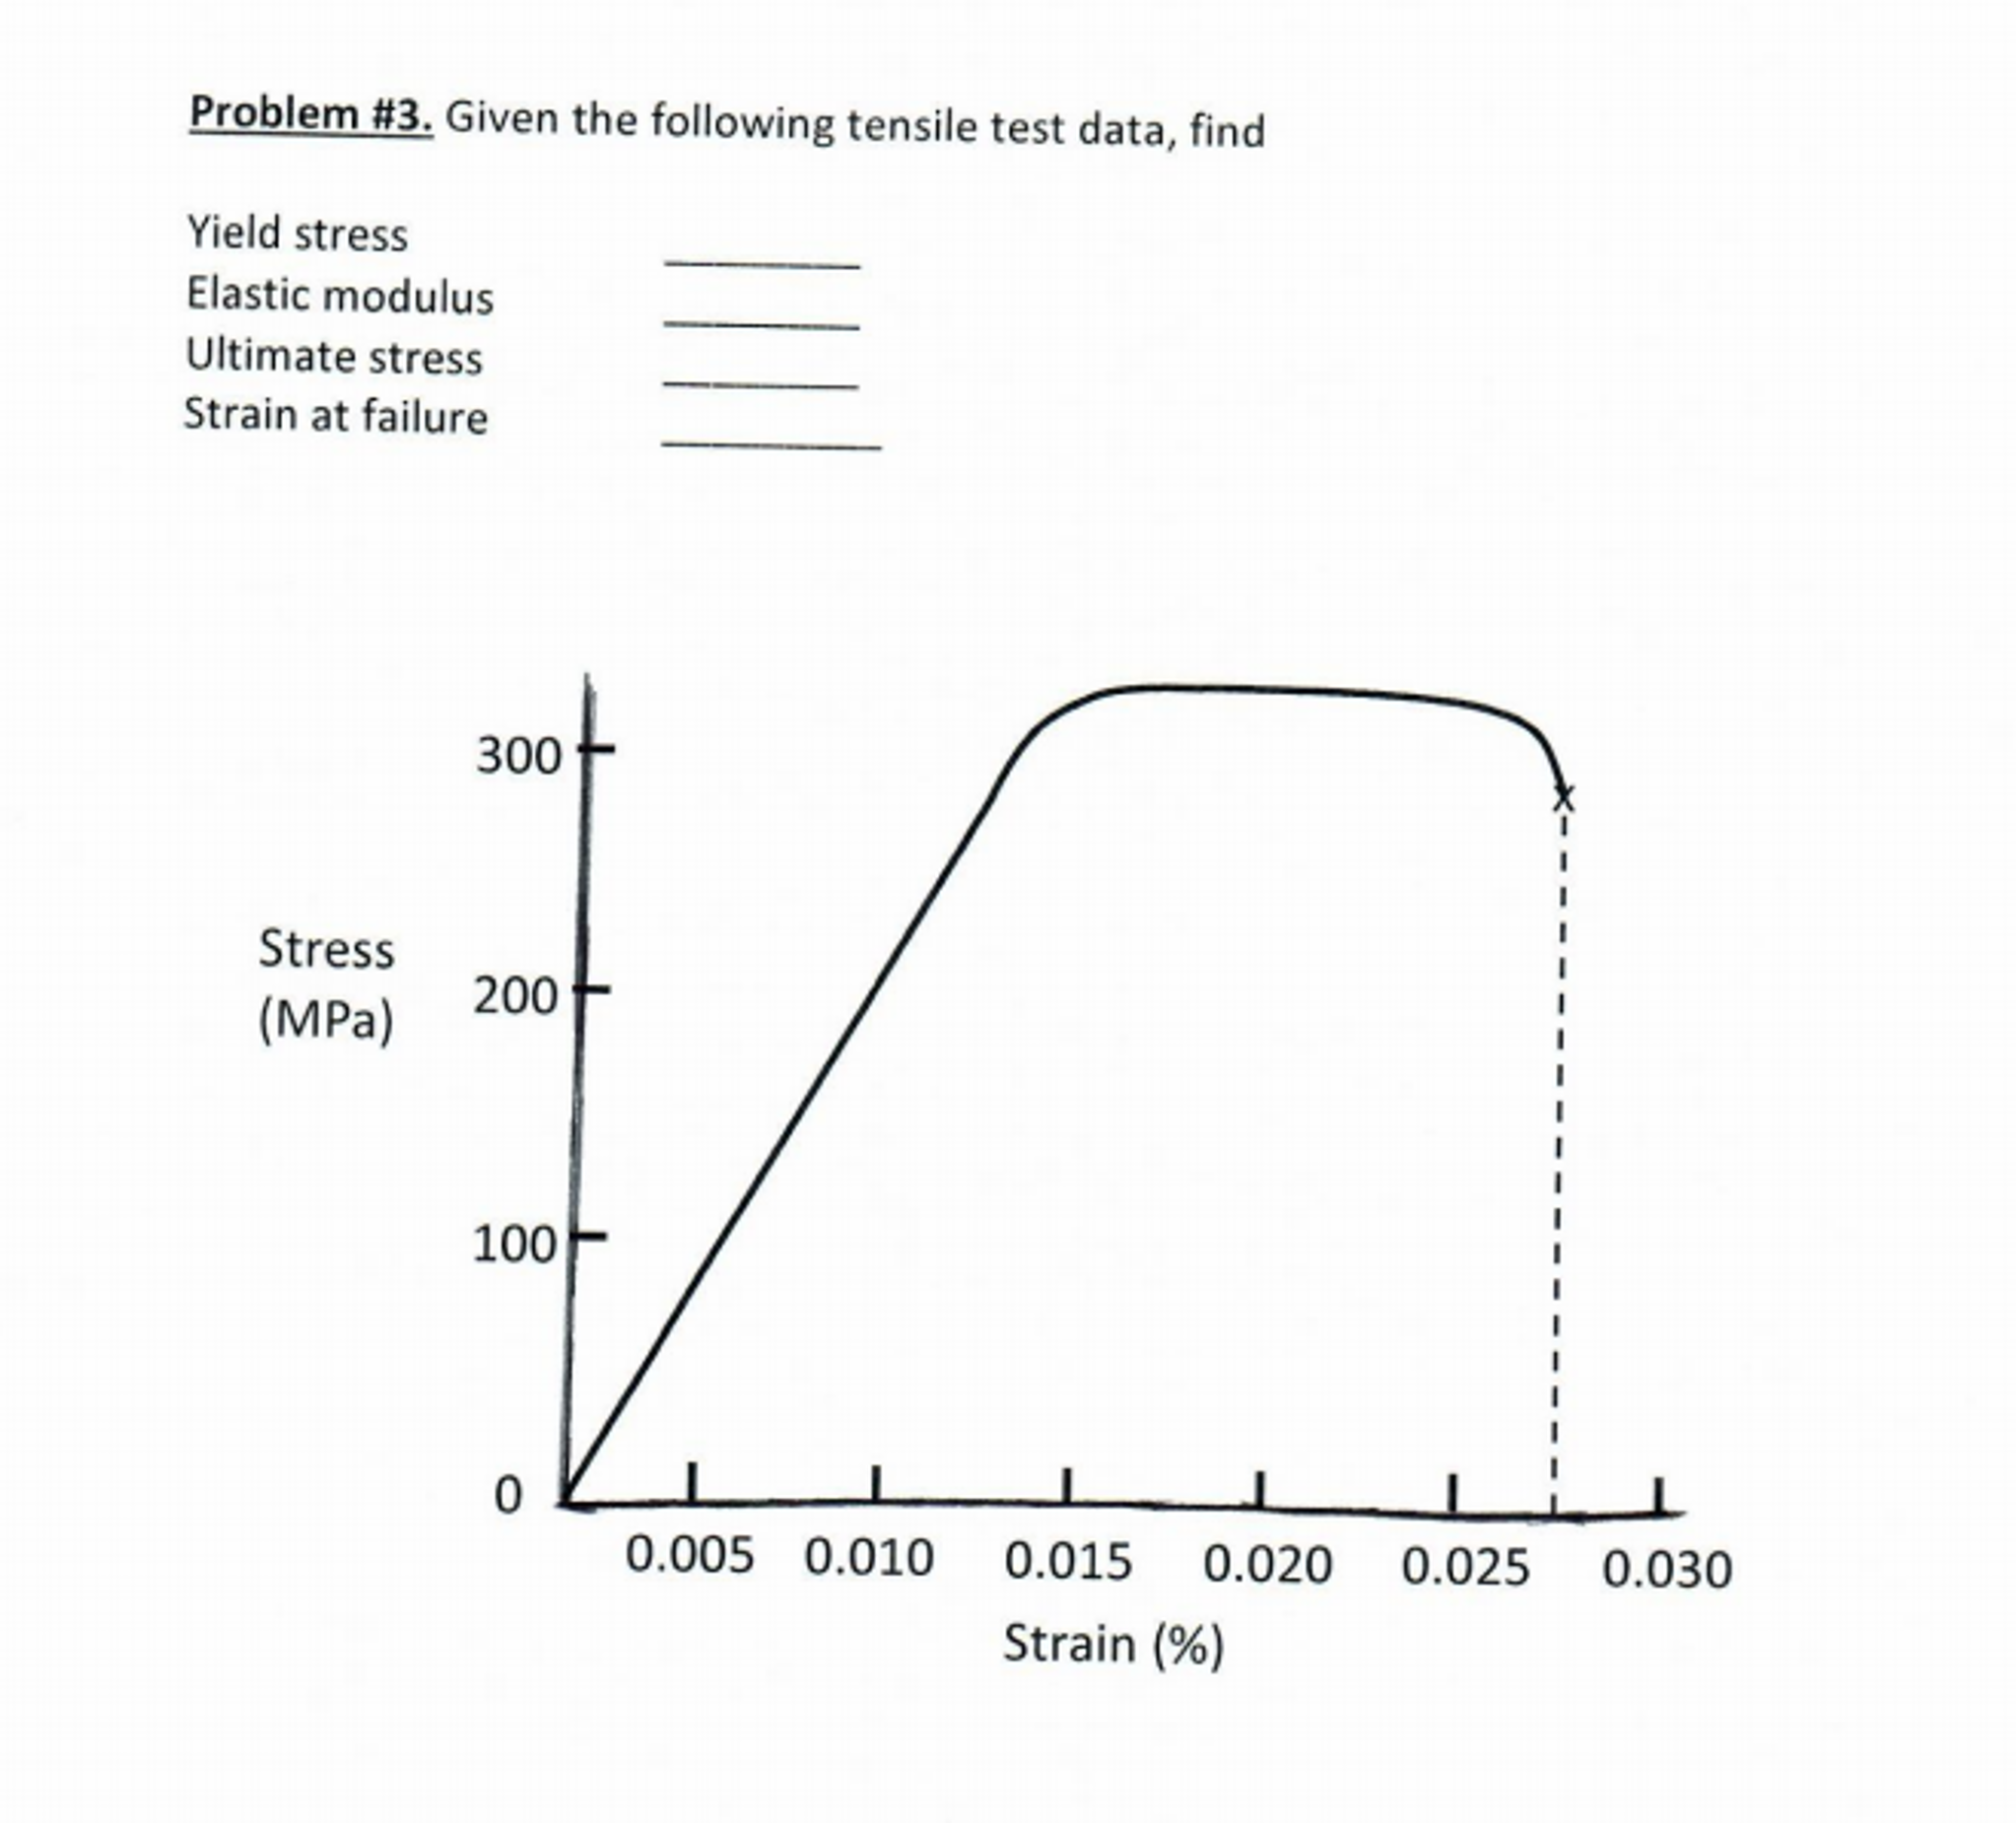 Data Acquisition For Testing Strain : Solved given the following tensile test data find yield